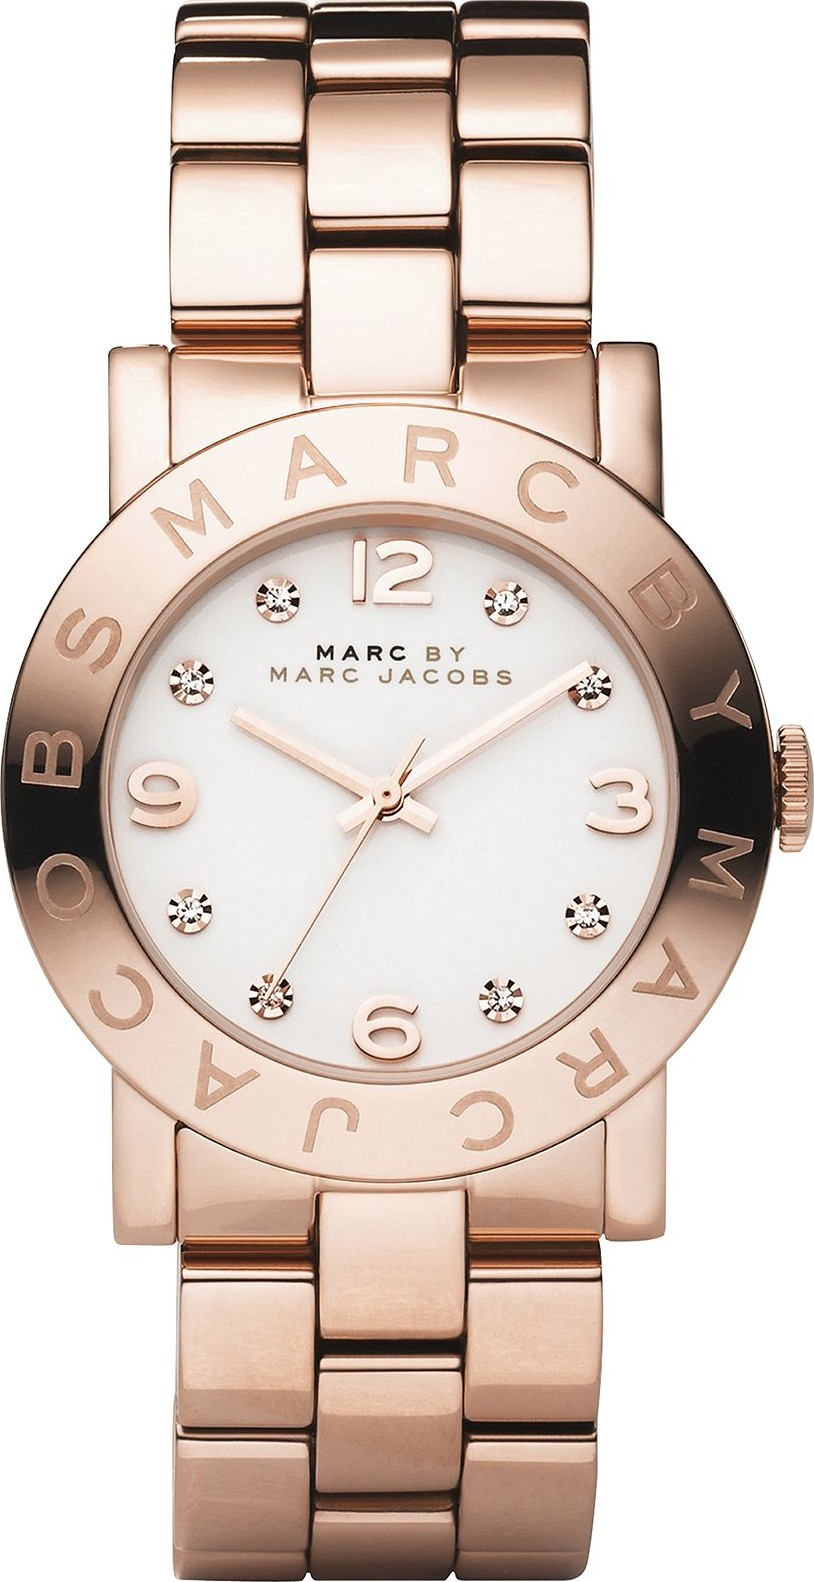 dong ho marc jacobs nu